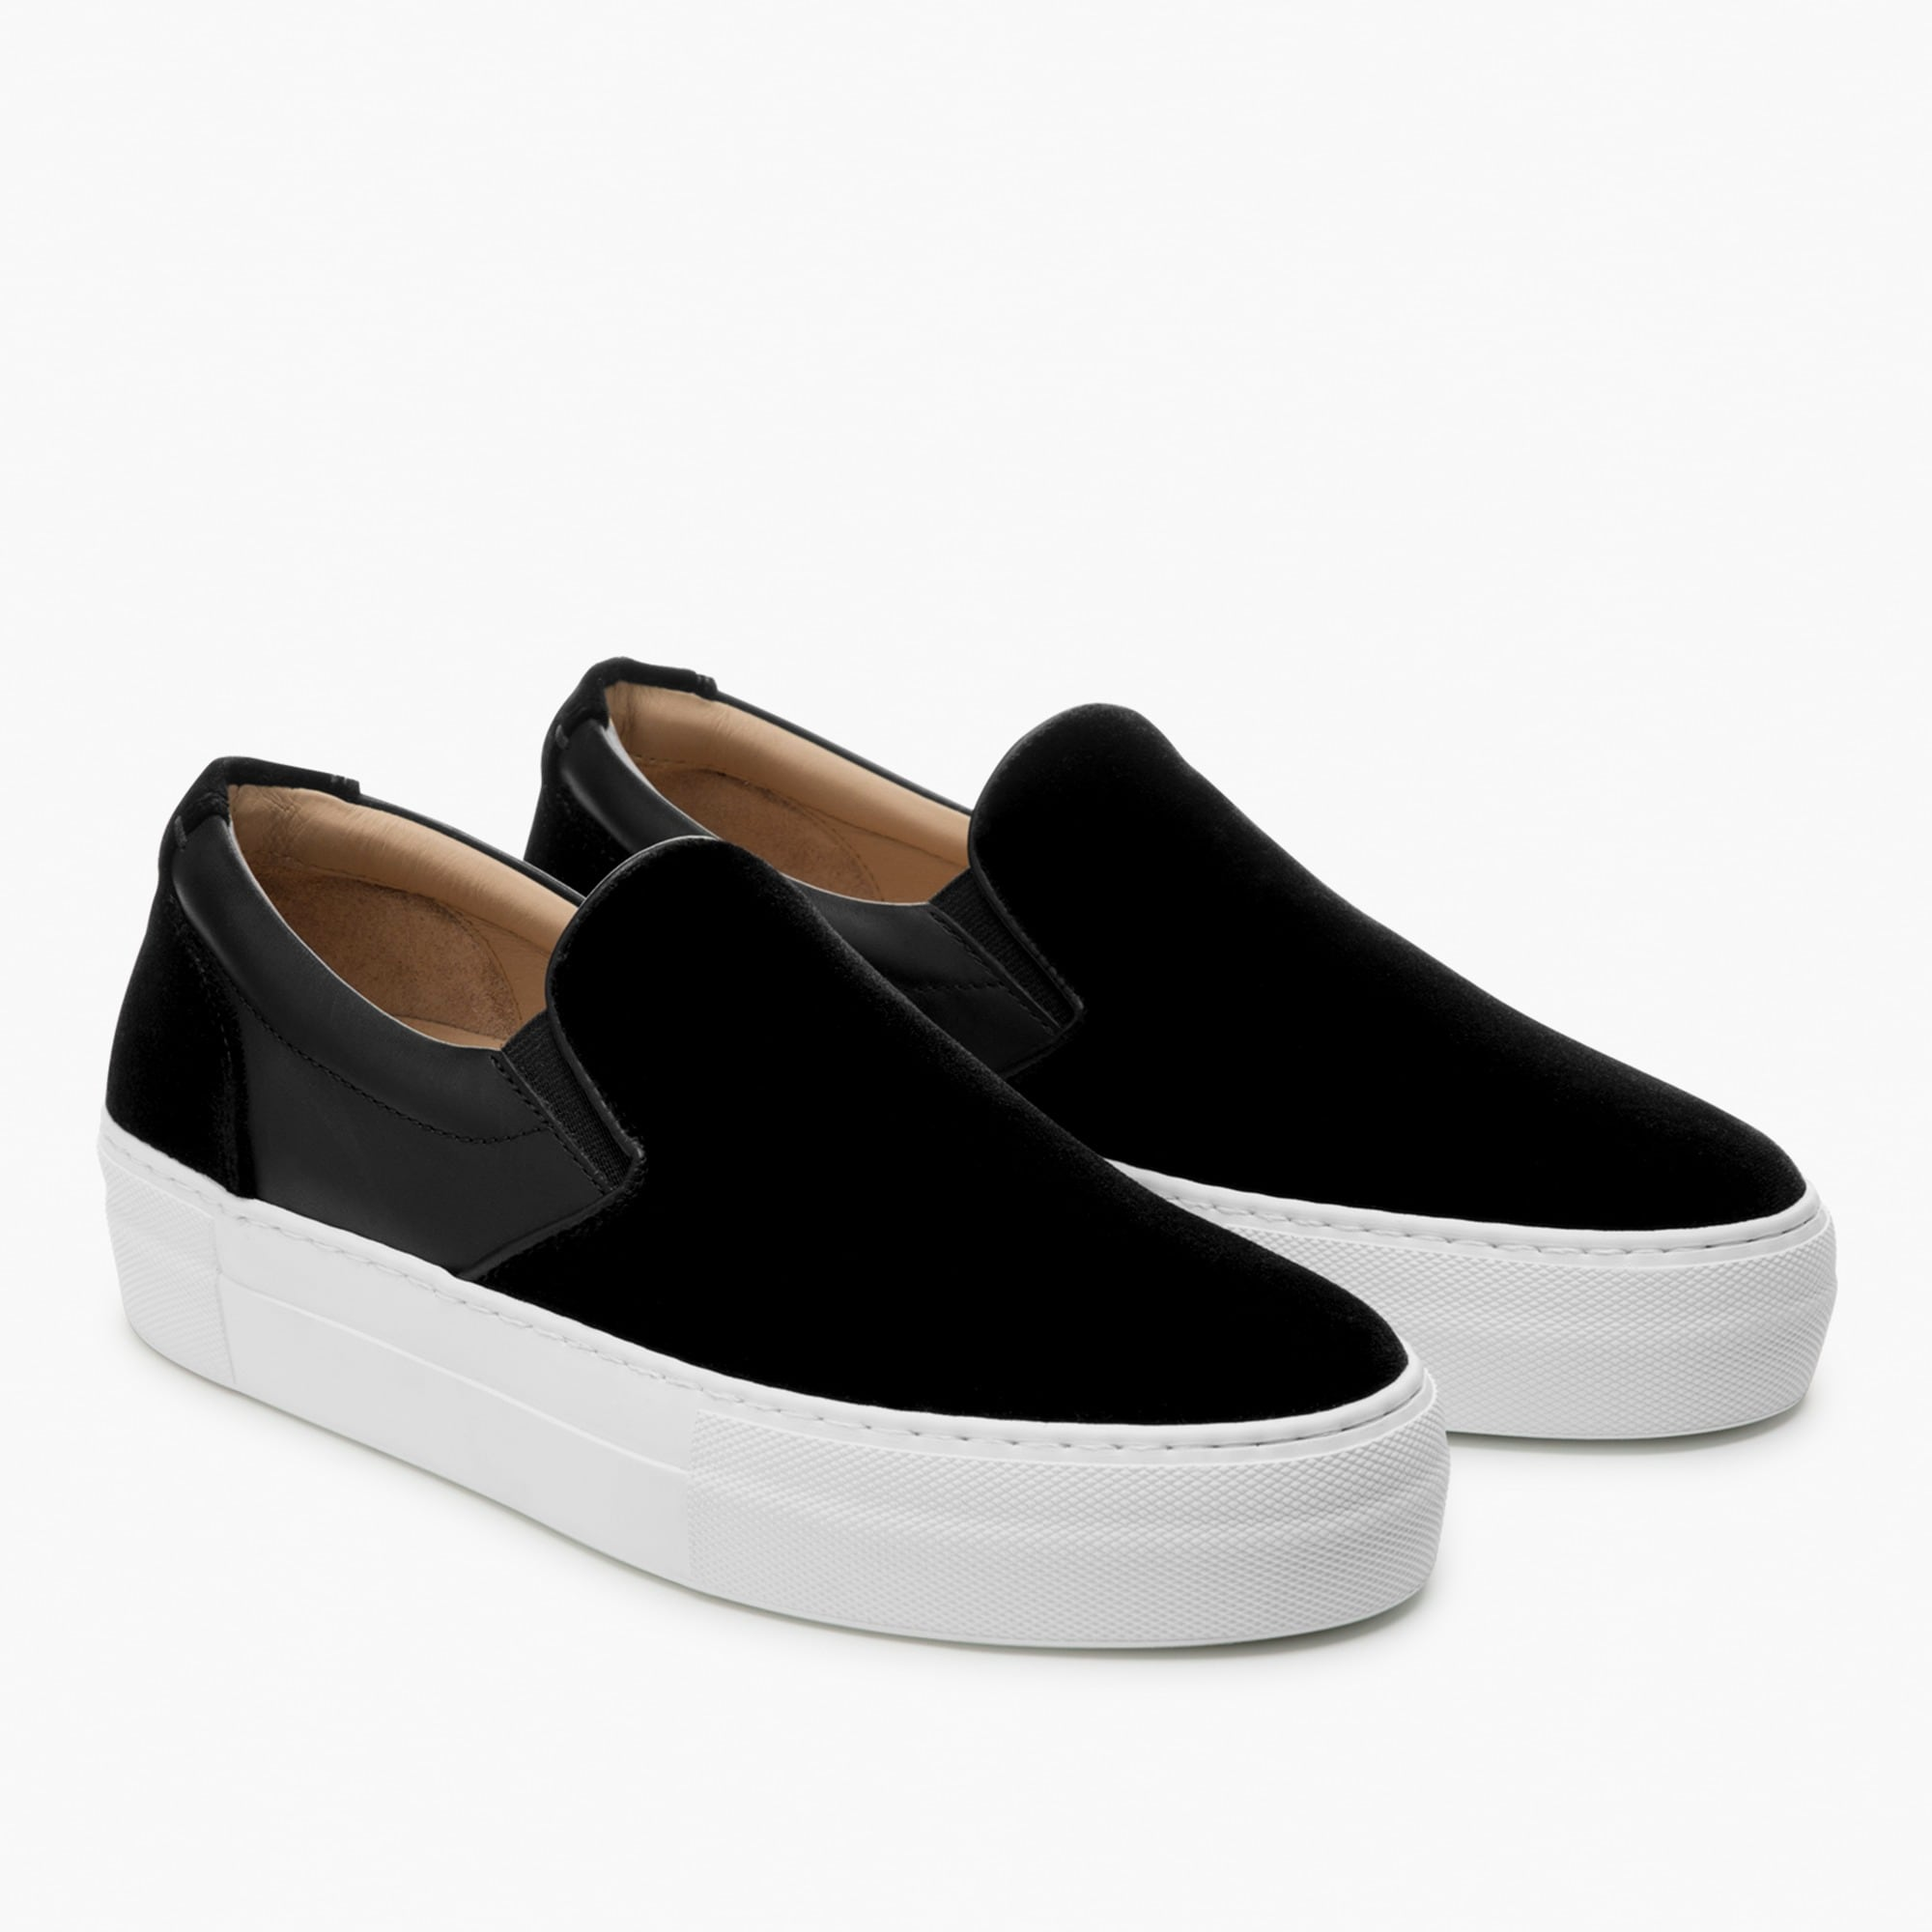 womens GREATS® Wooster slip-on sneakers in black velvet